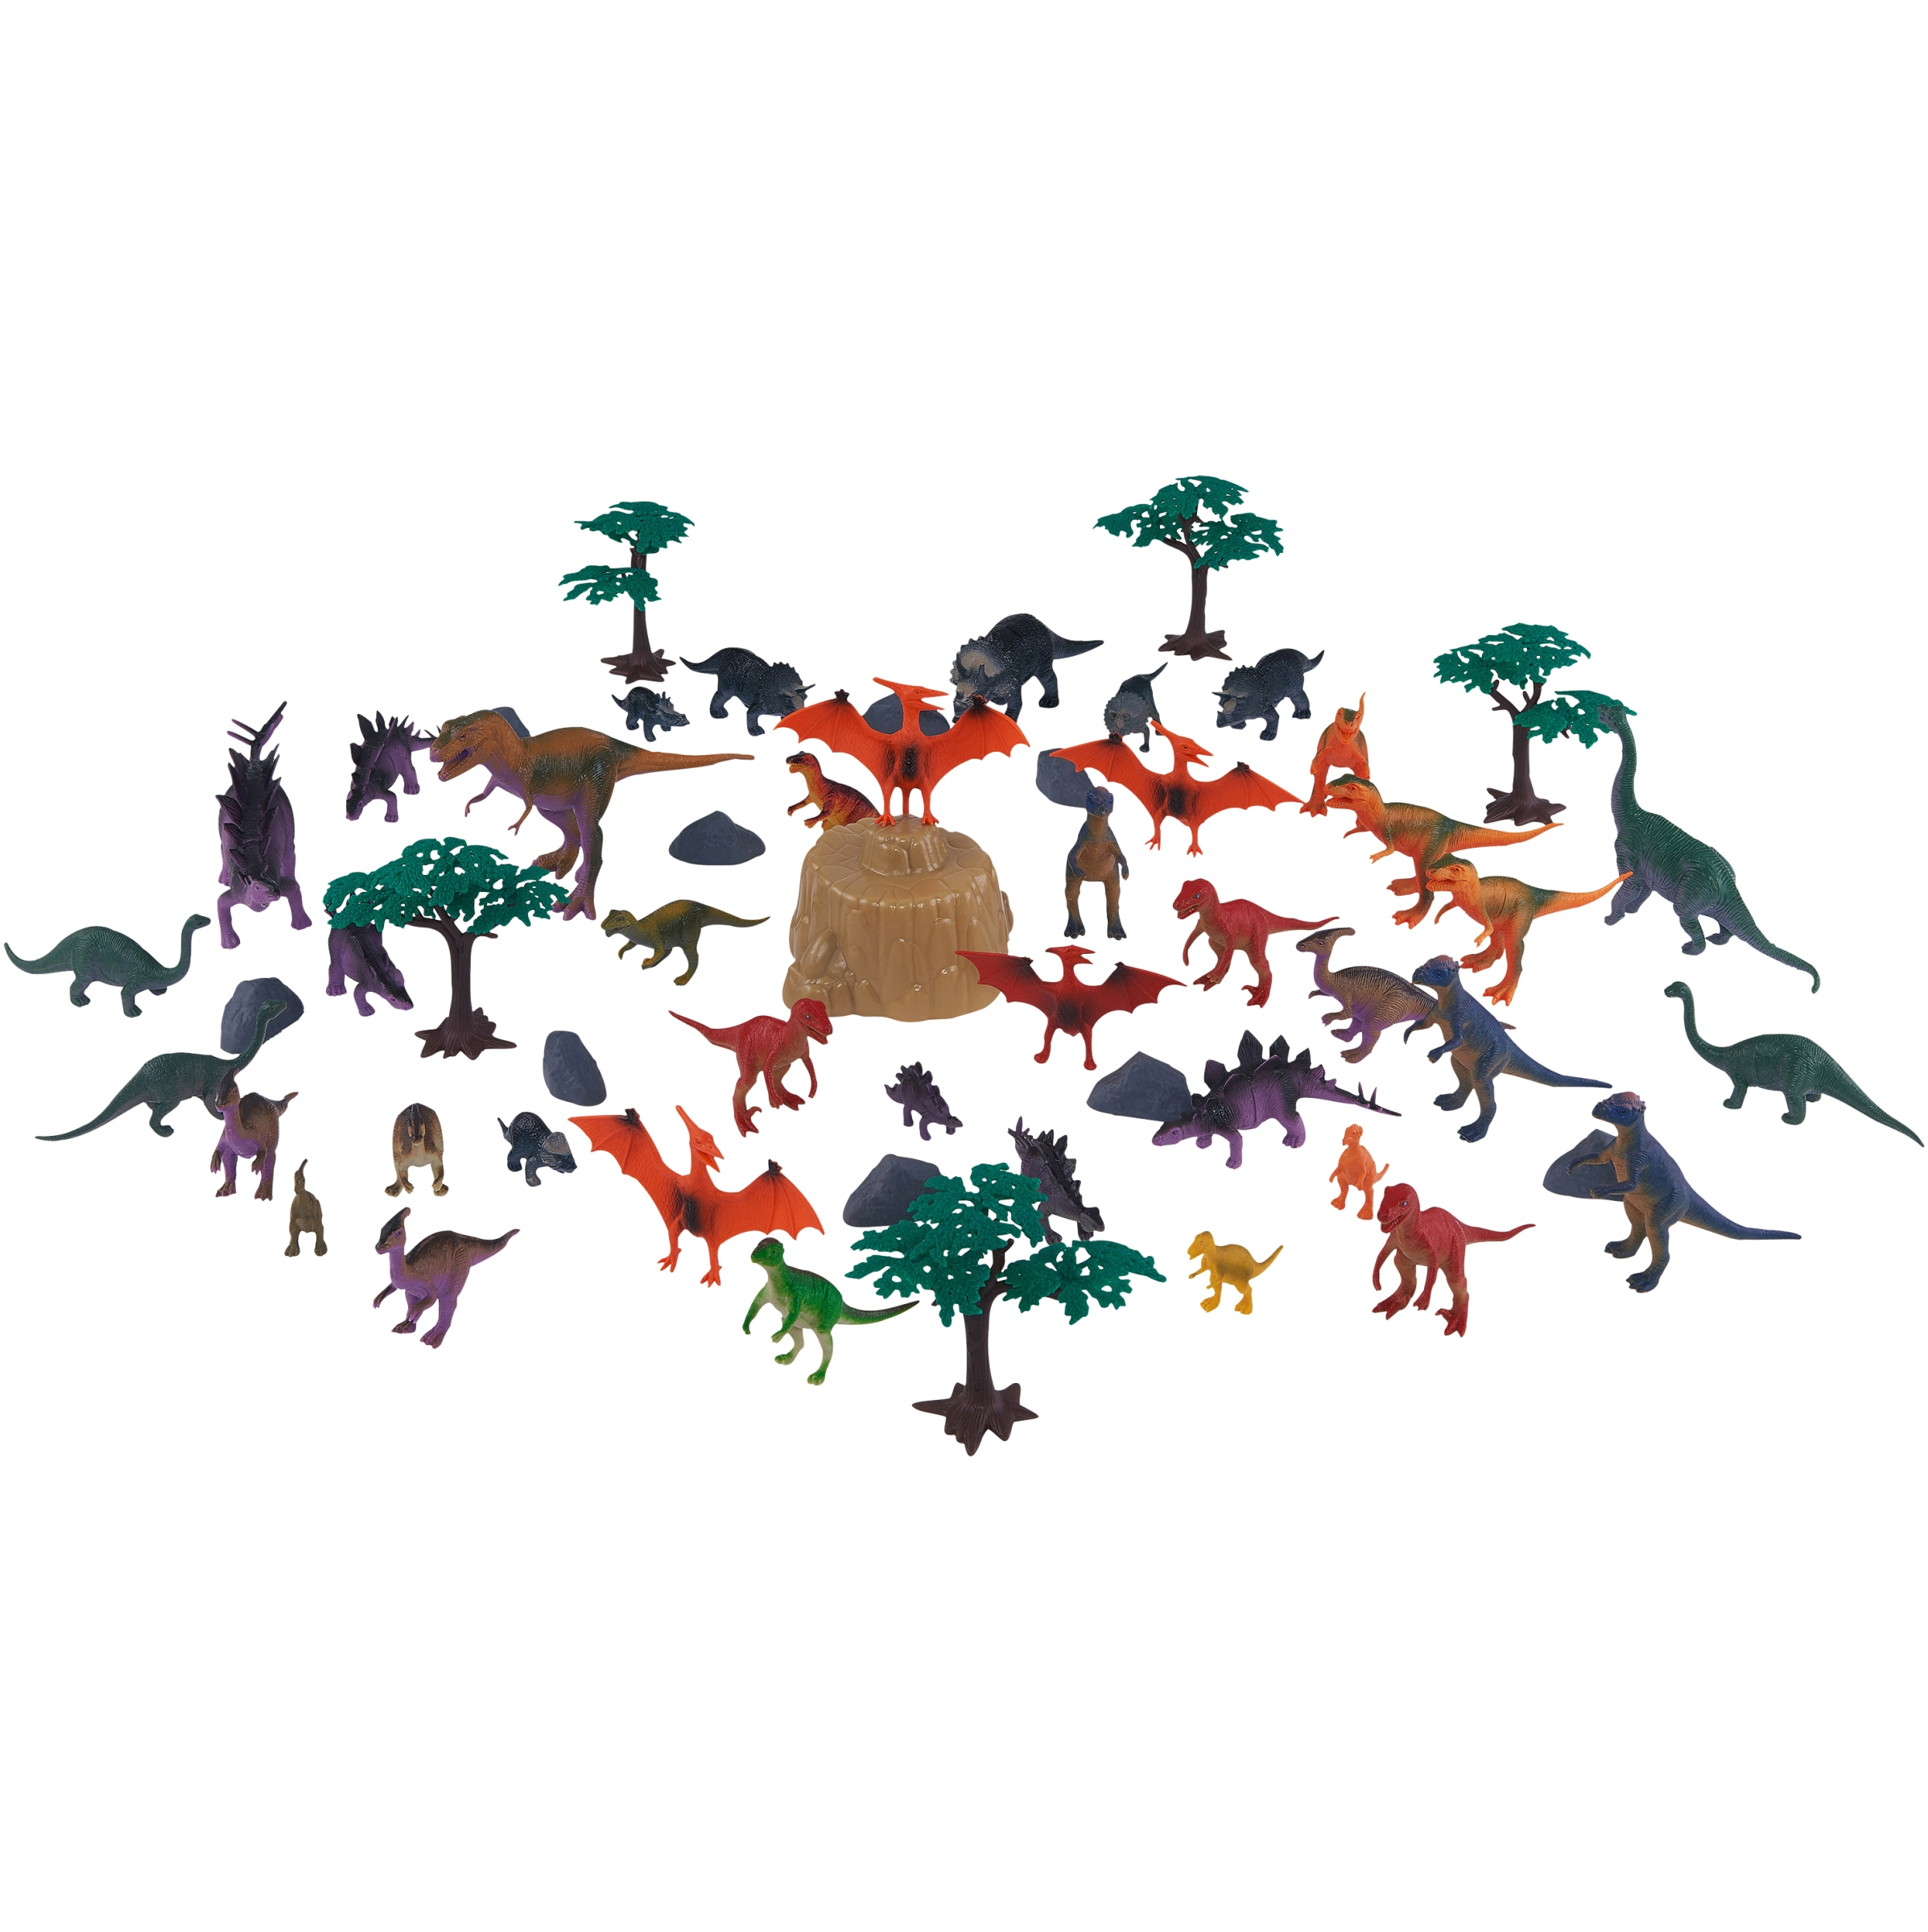 55-Piece Jumbo Dinosaurs Bucket by Wal-Mart Stores, Inc.